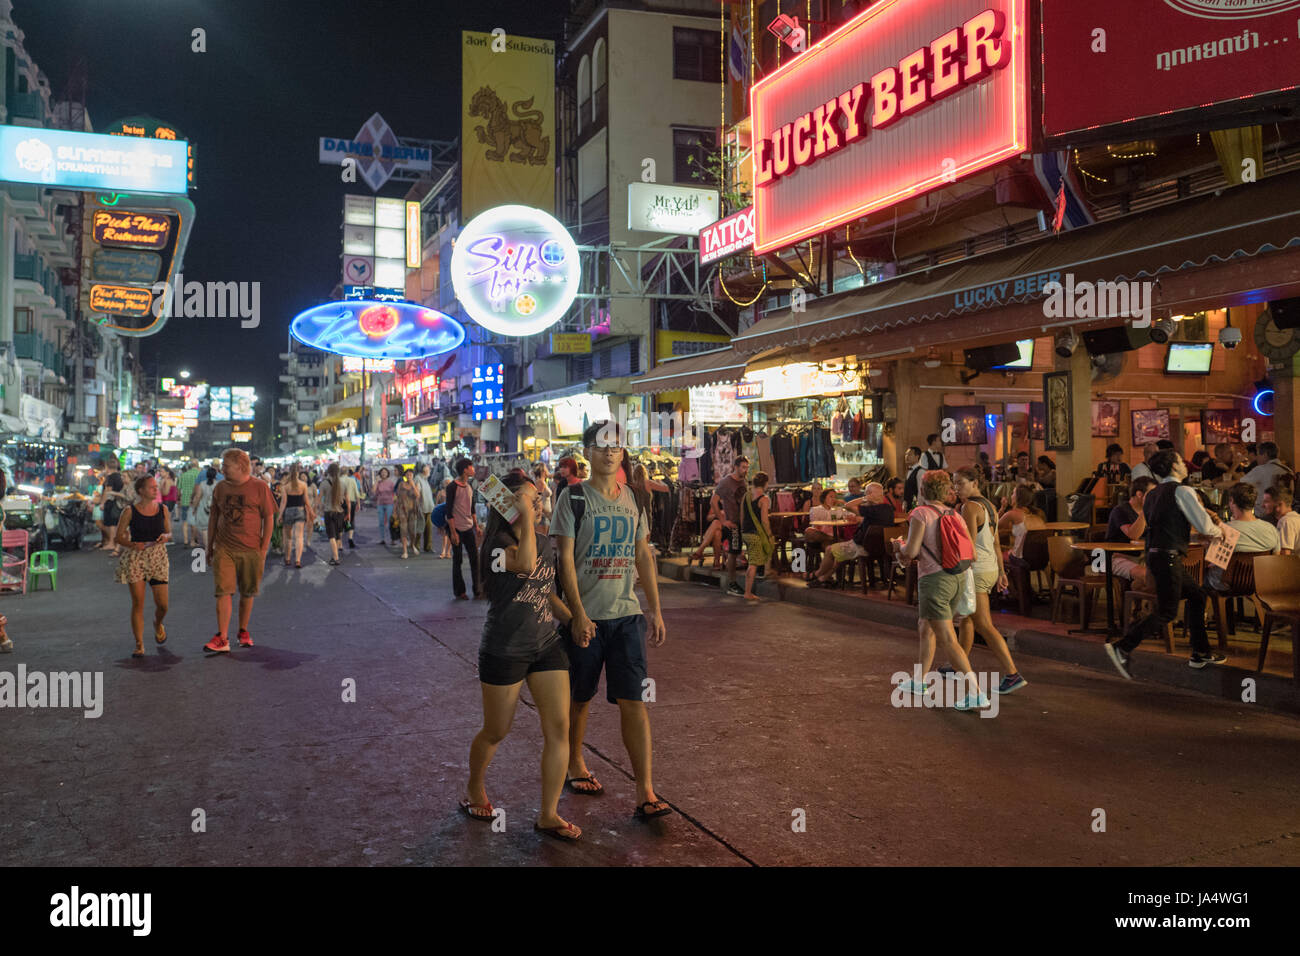 Khao San road by night in Bangkok. This is a world famous backpacker street and a major tourist attraction in Thailand. - Stock Image